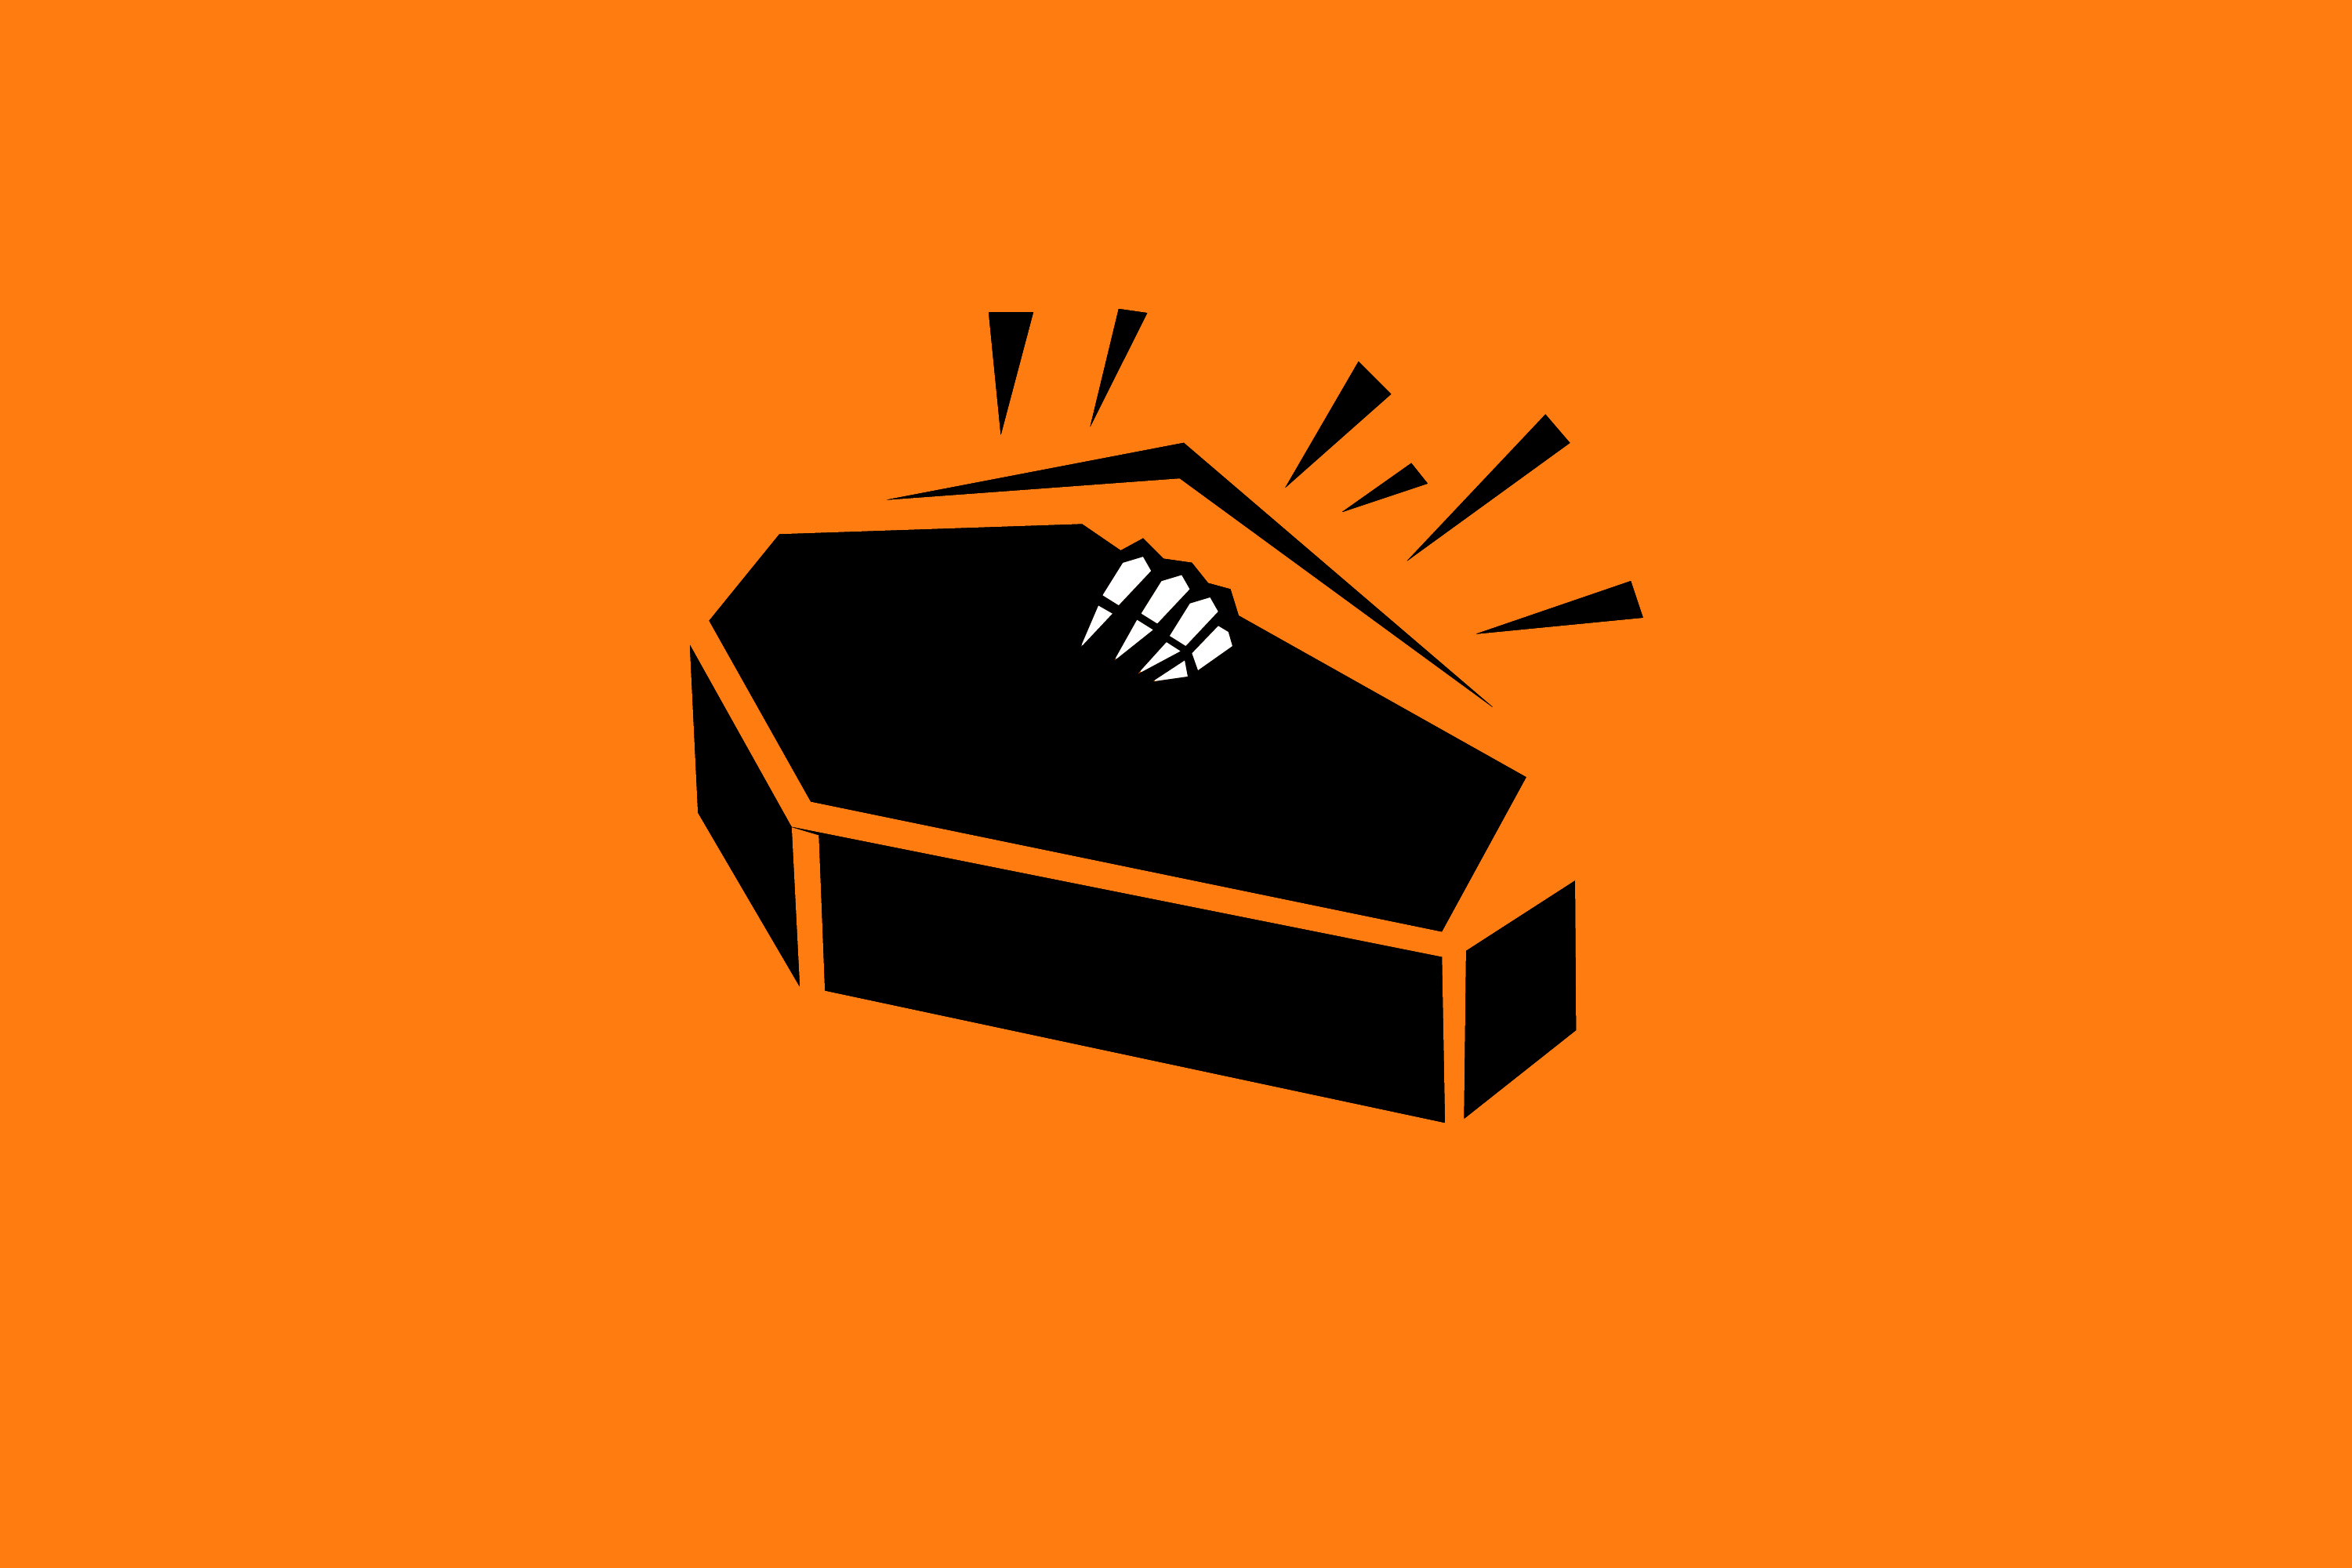 Coffin clipart halloween skeleton. Image of creepyhalloweenimages a